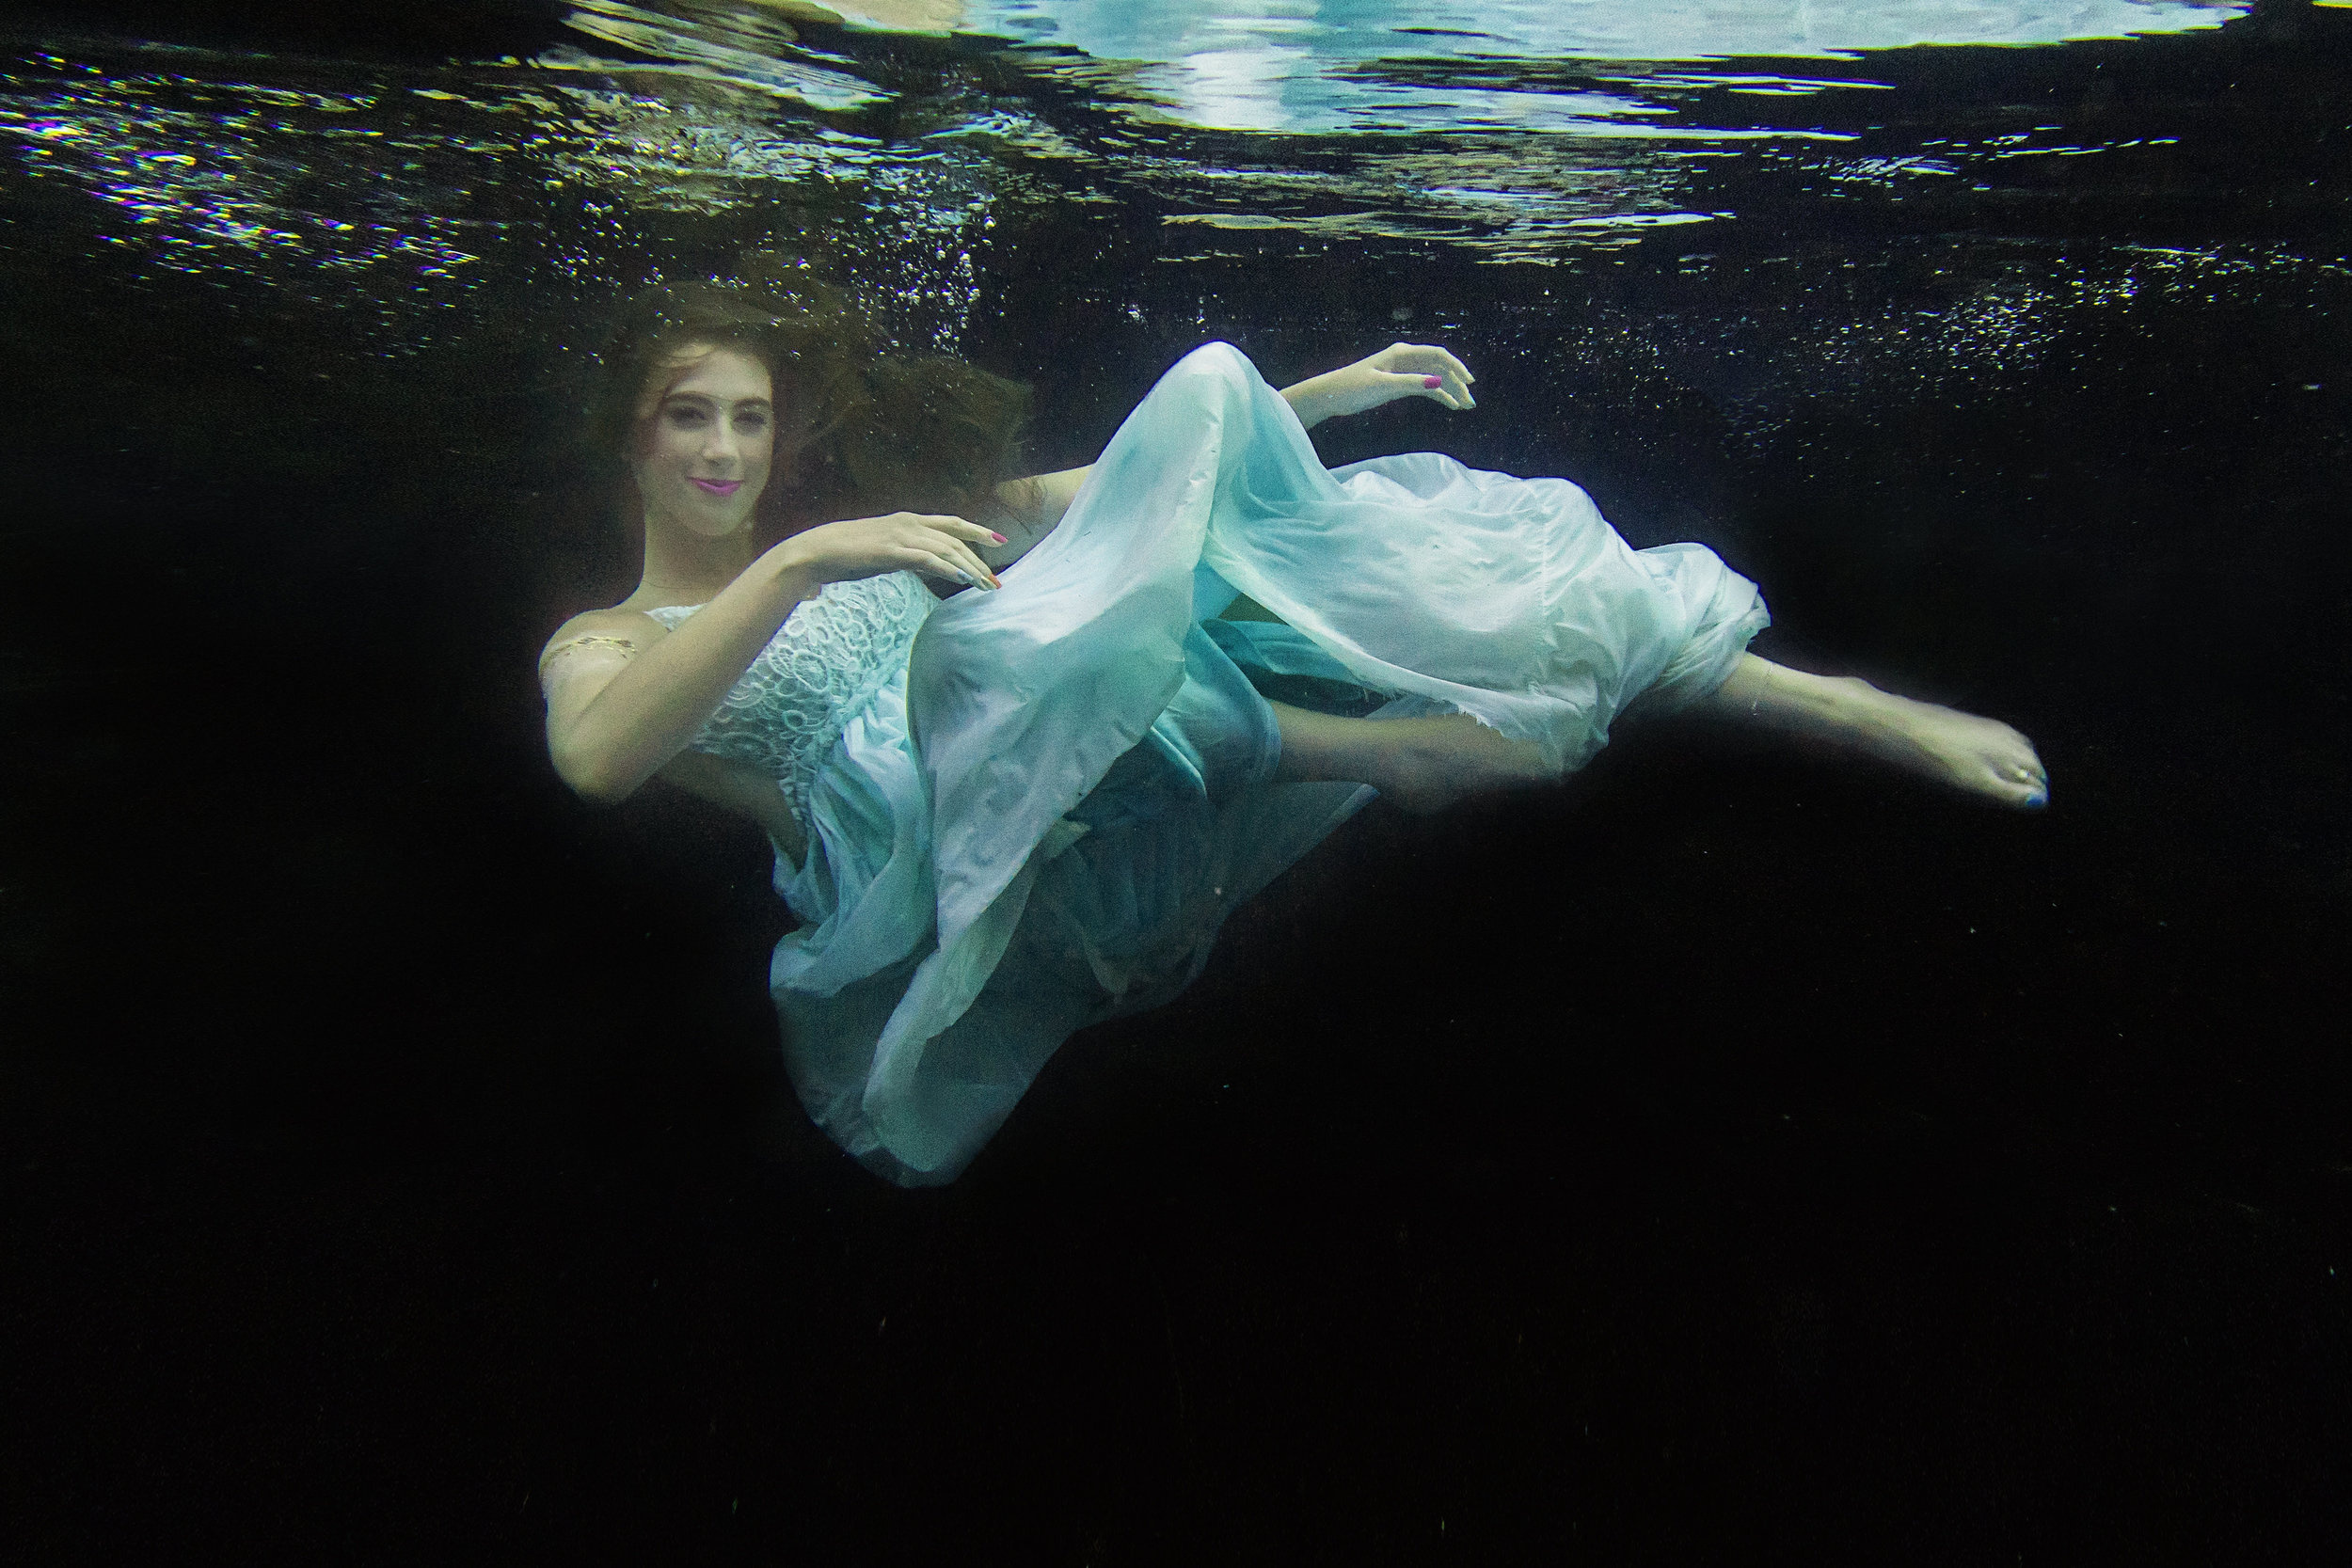 Underwater_GALLERY_BrienneMichelle_resized_276.JPG